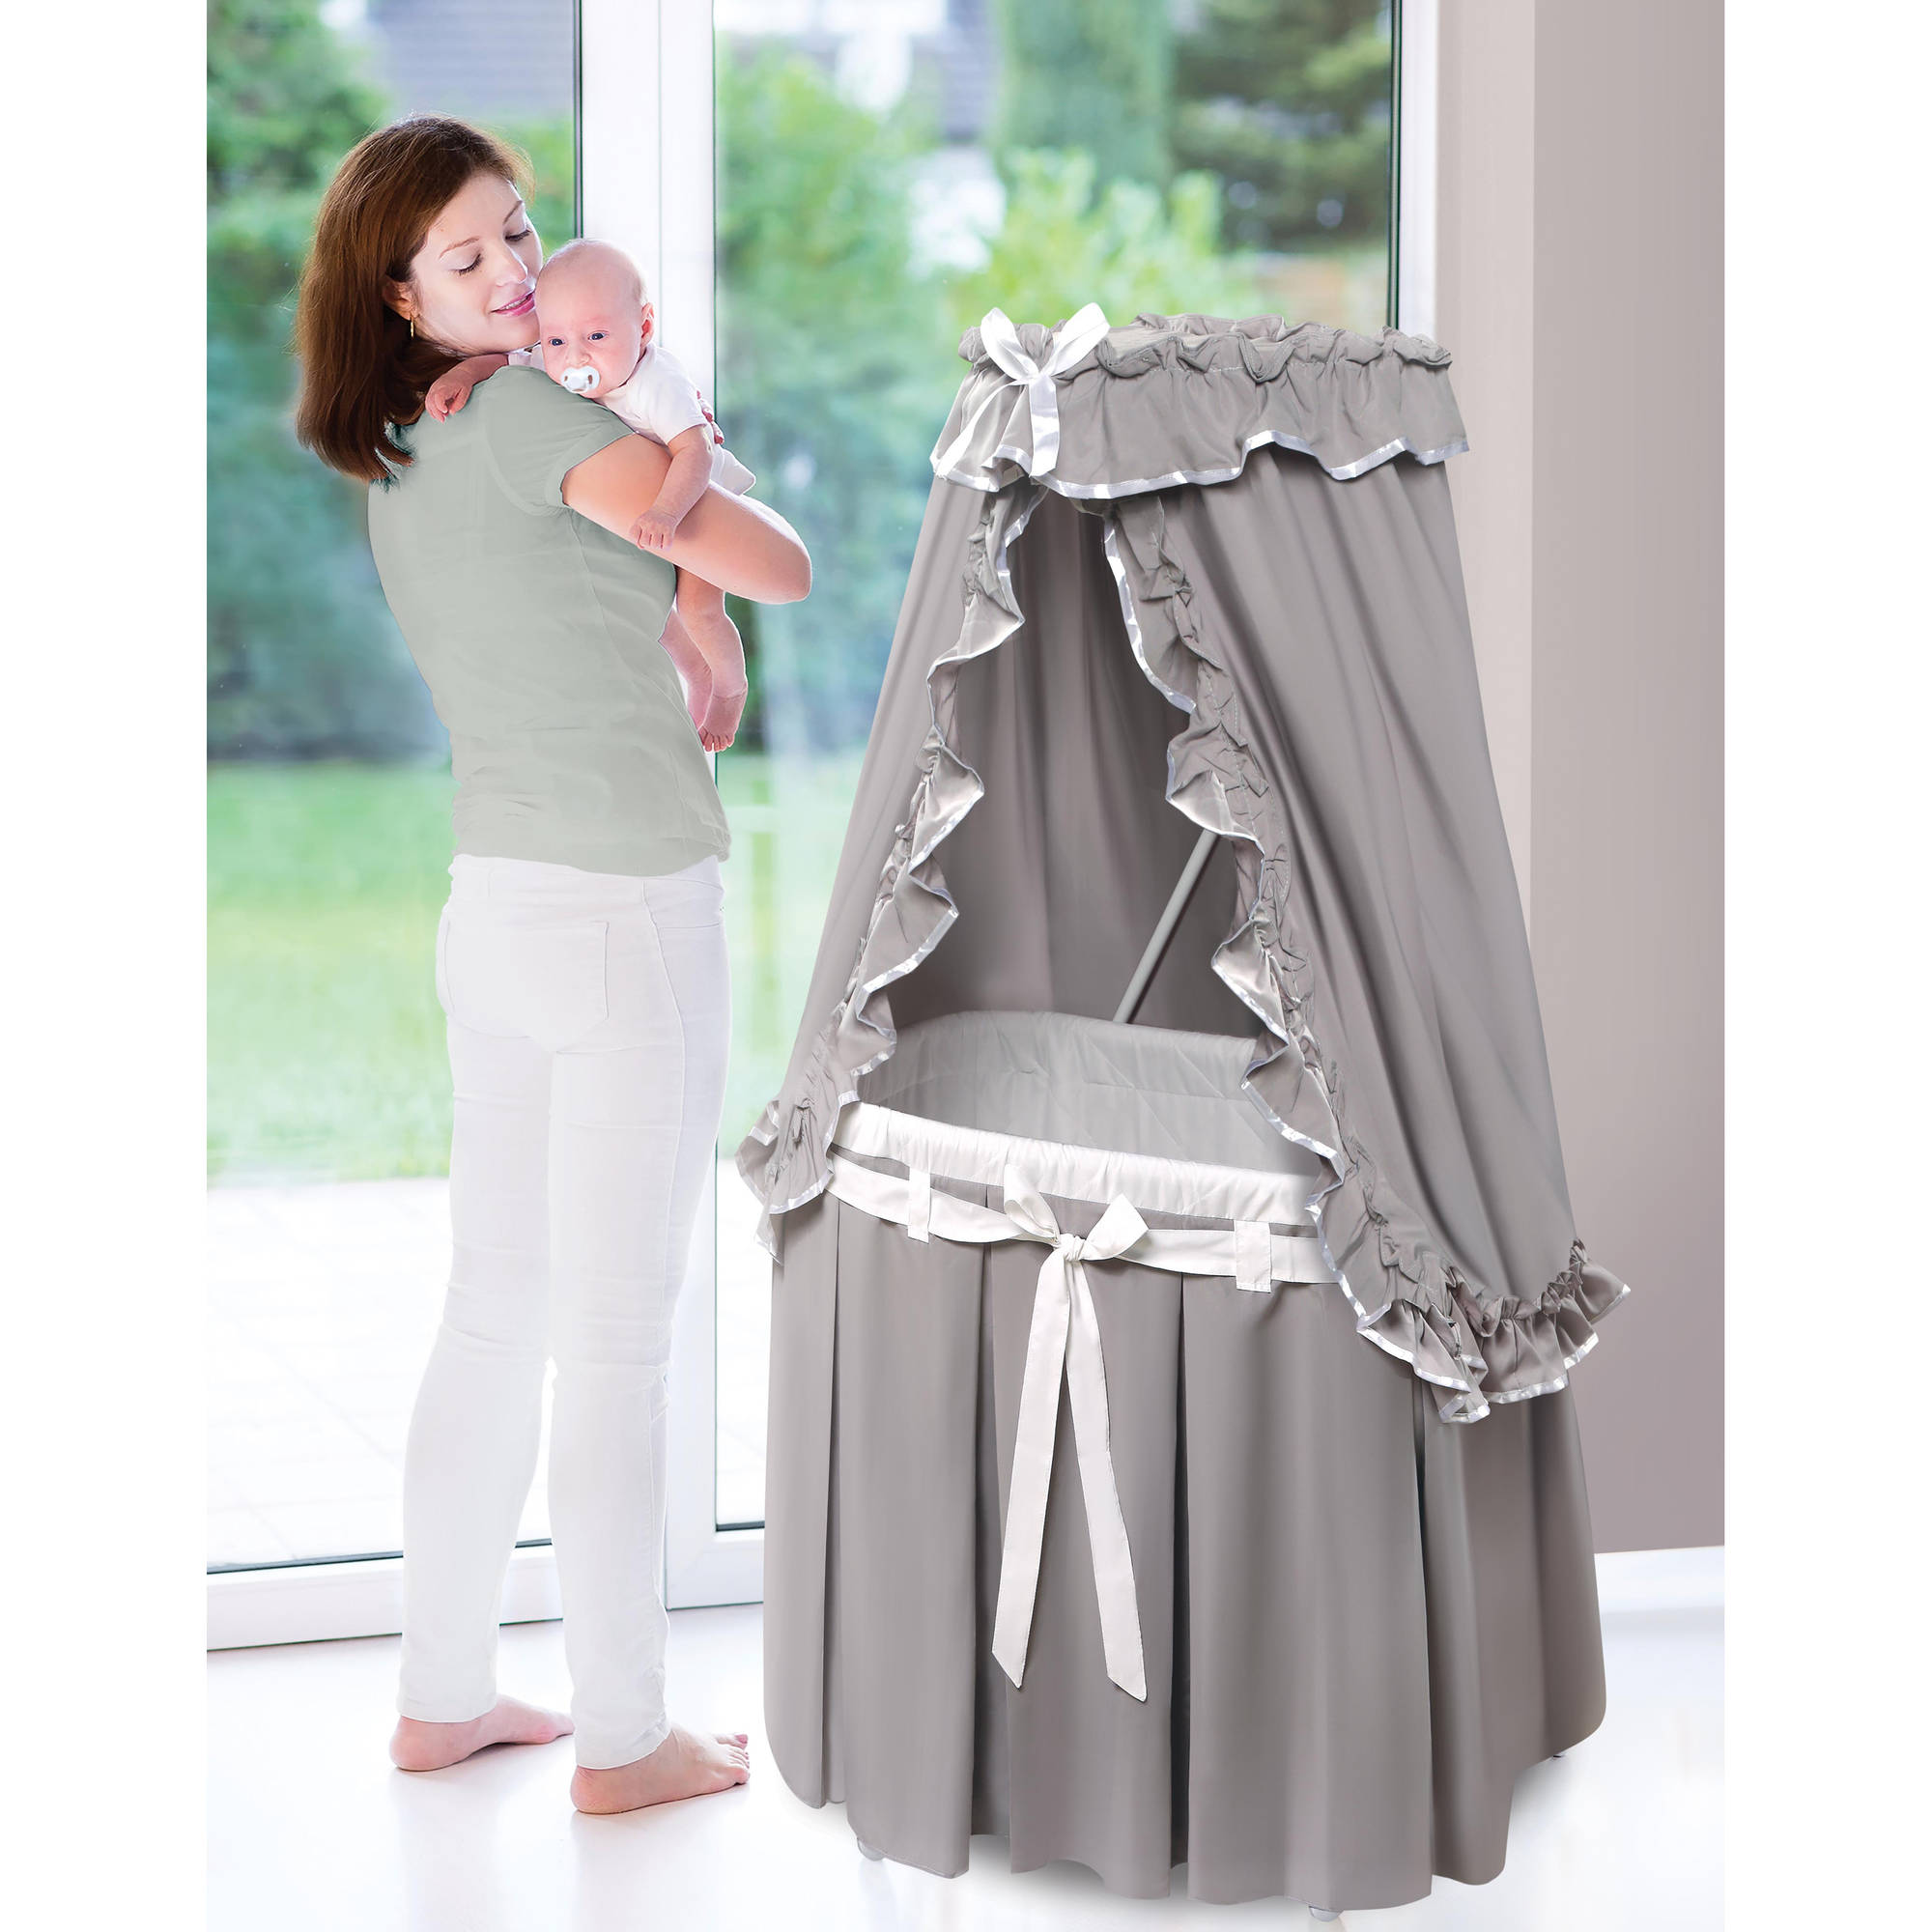 Badger Basket Majesty Baby Bassinet with Canopy, Gray and White Bedding by Badger Basket